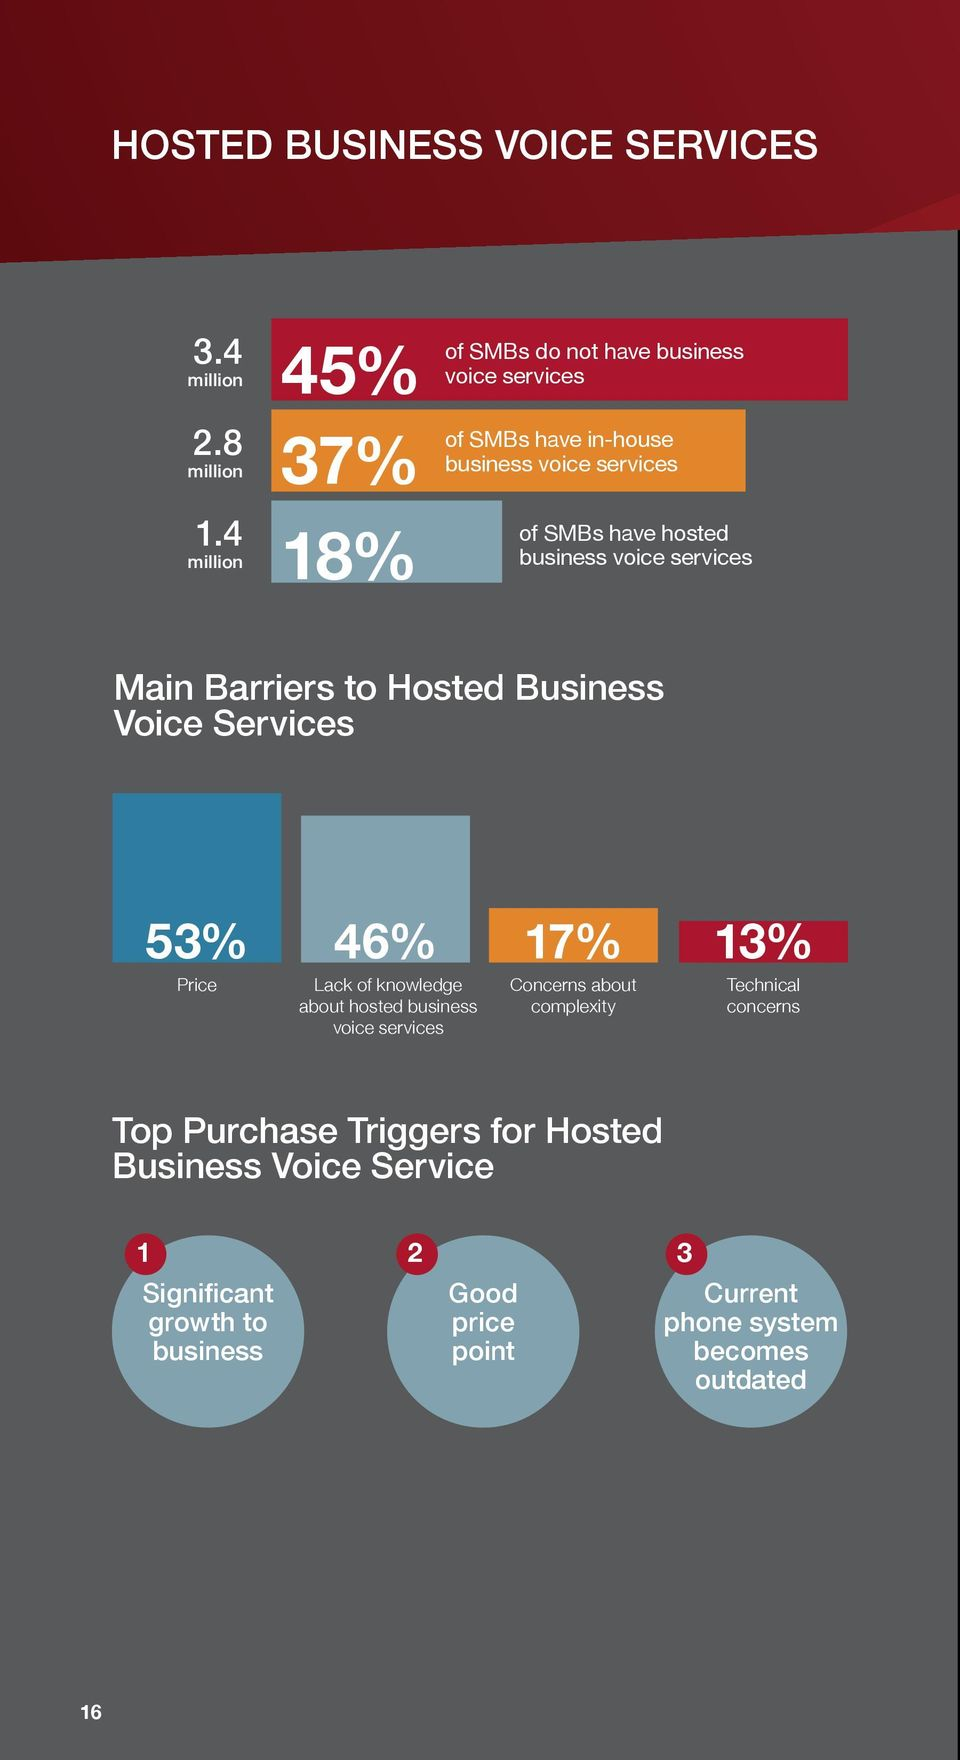 business voice services Main Barriers to Hosted Business Voice Services 53% 46% 17% 13% Price Lack of knowledge about hosted business